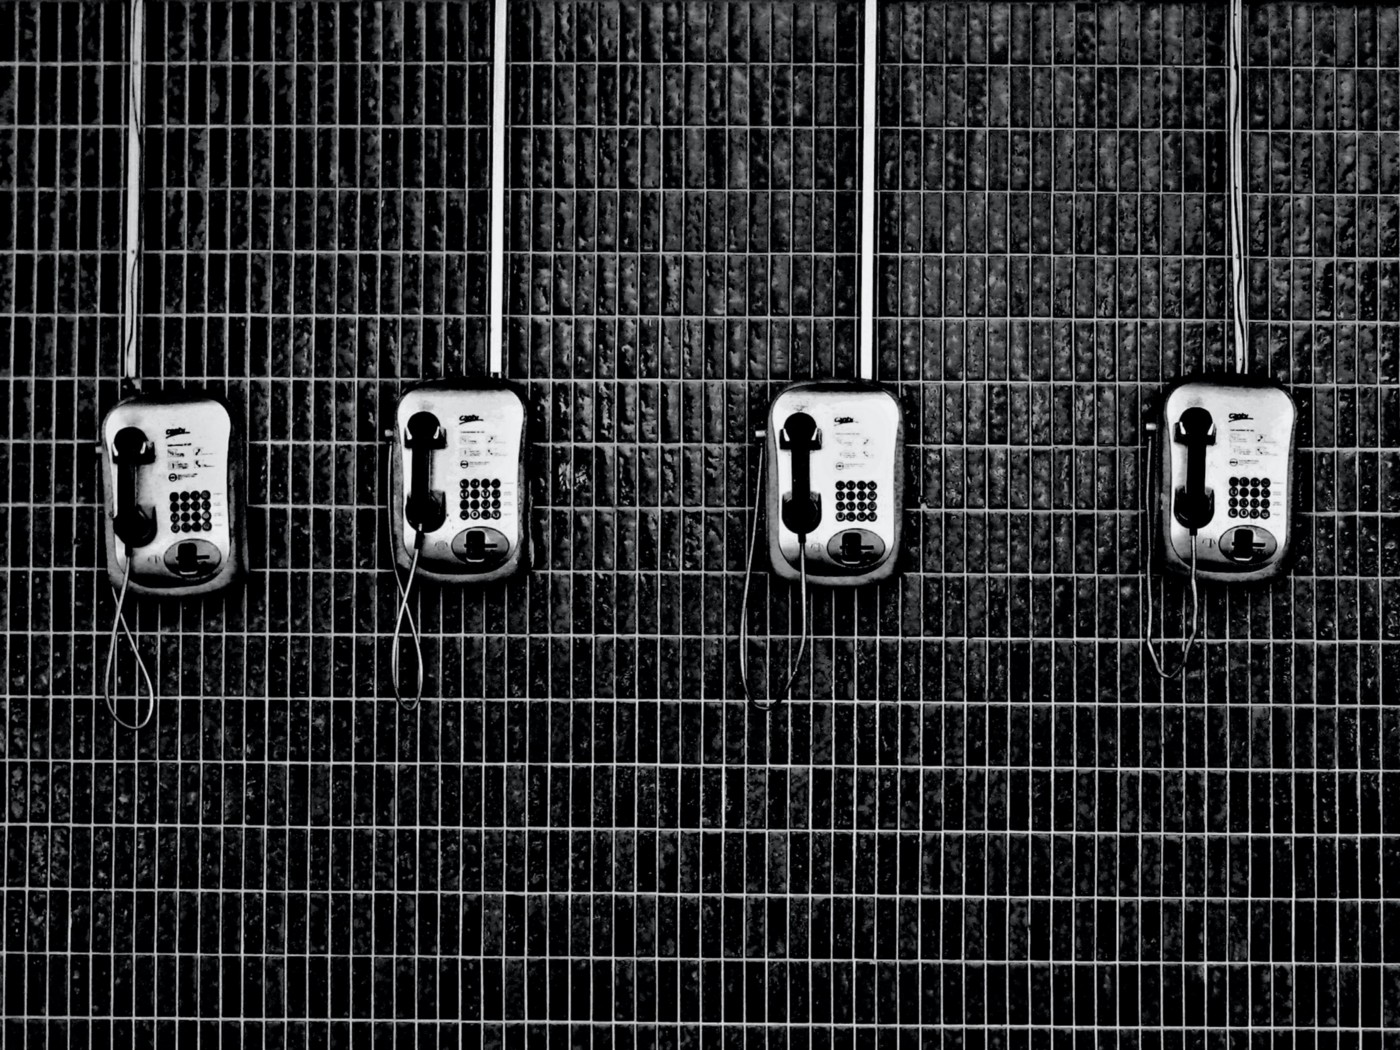 four interesting silver telephones on a black and white grid background taken by @eduardoequis on Unsplash